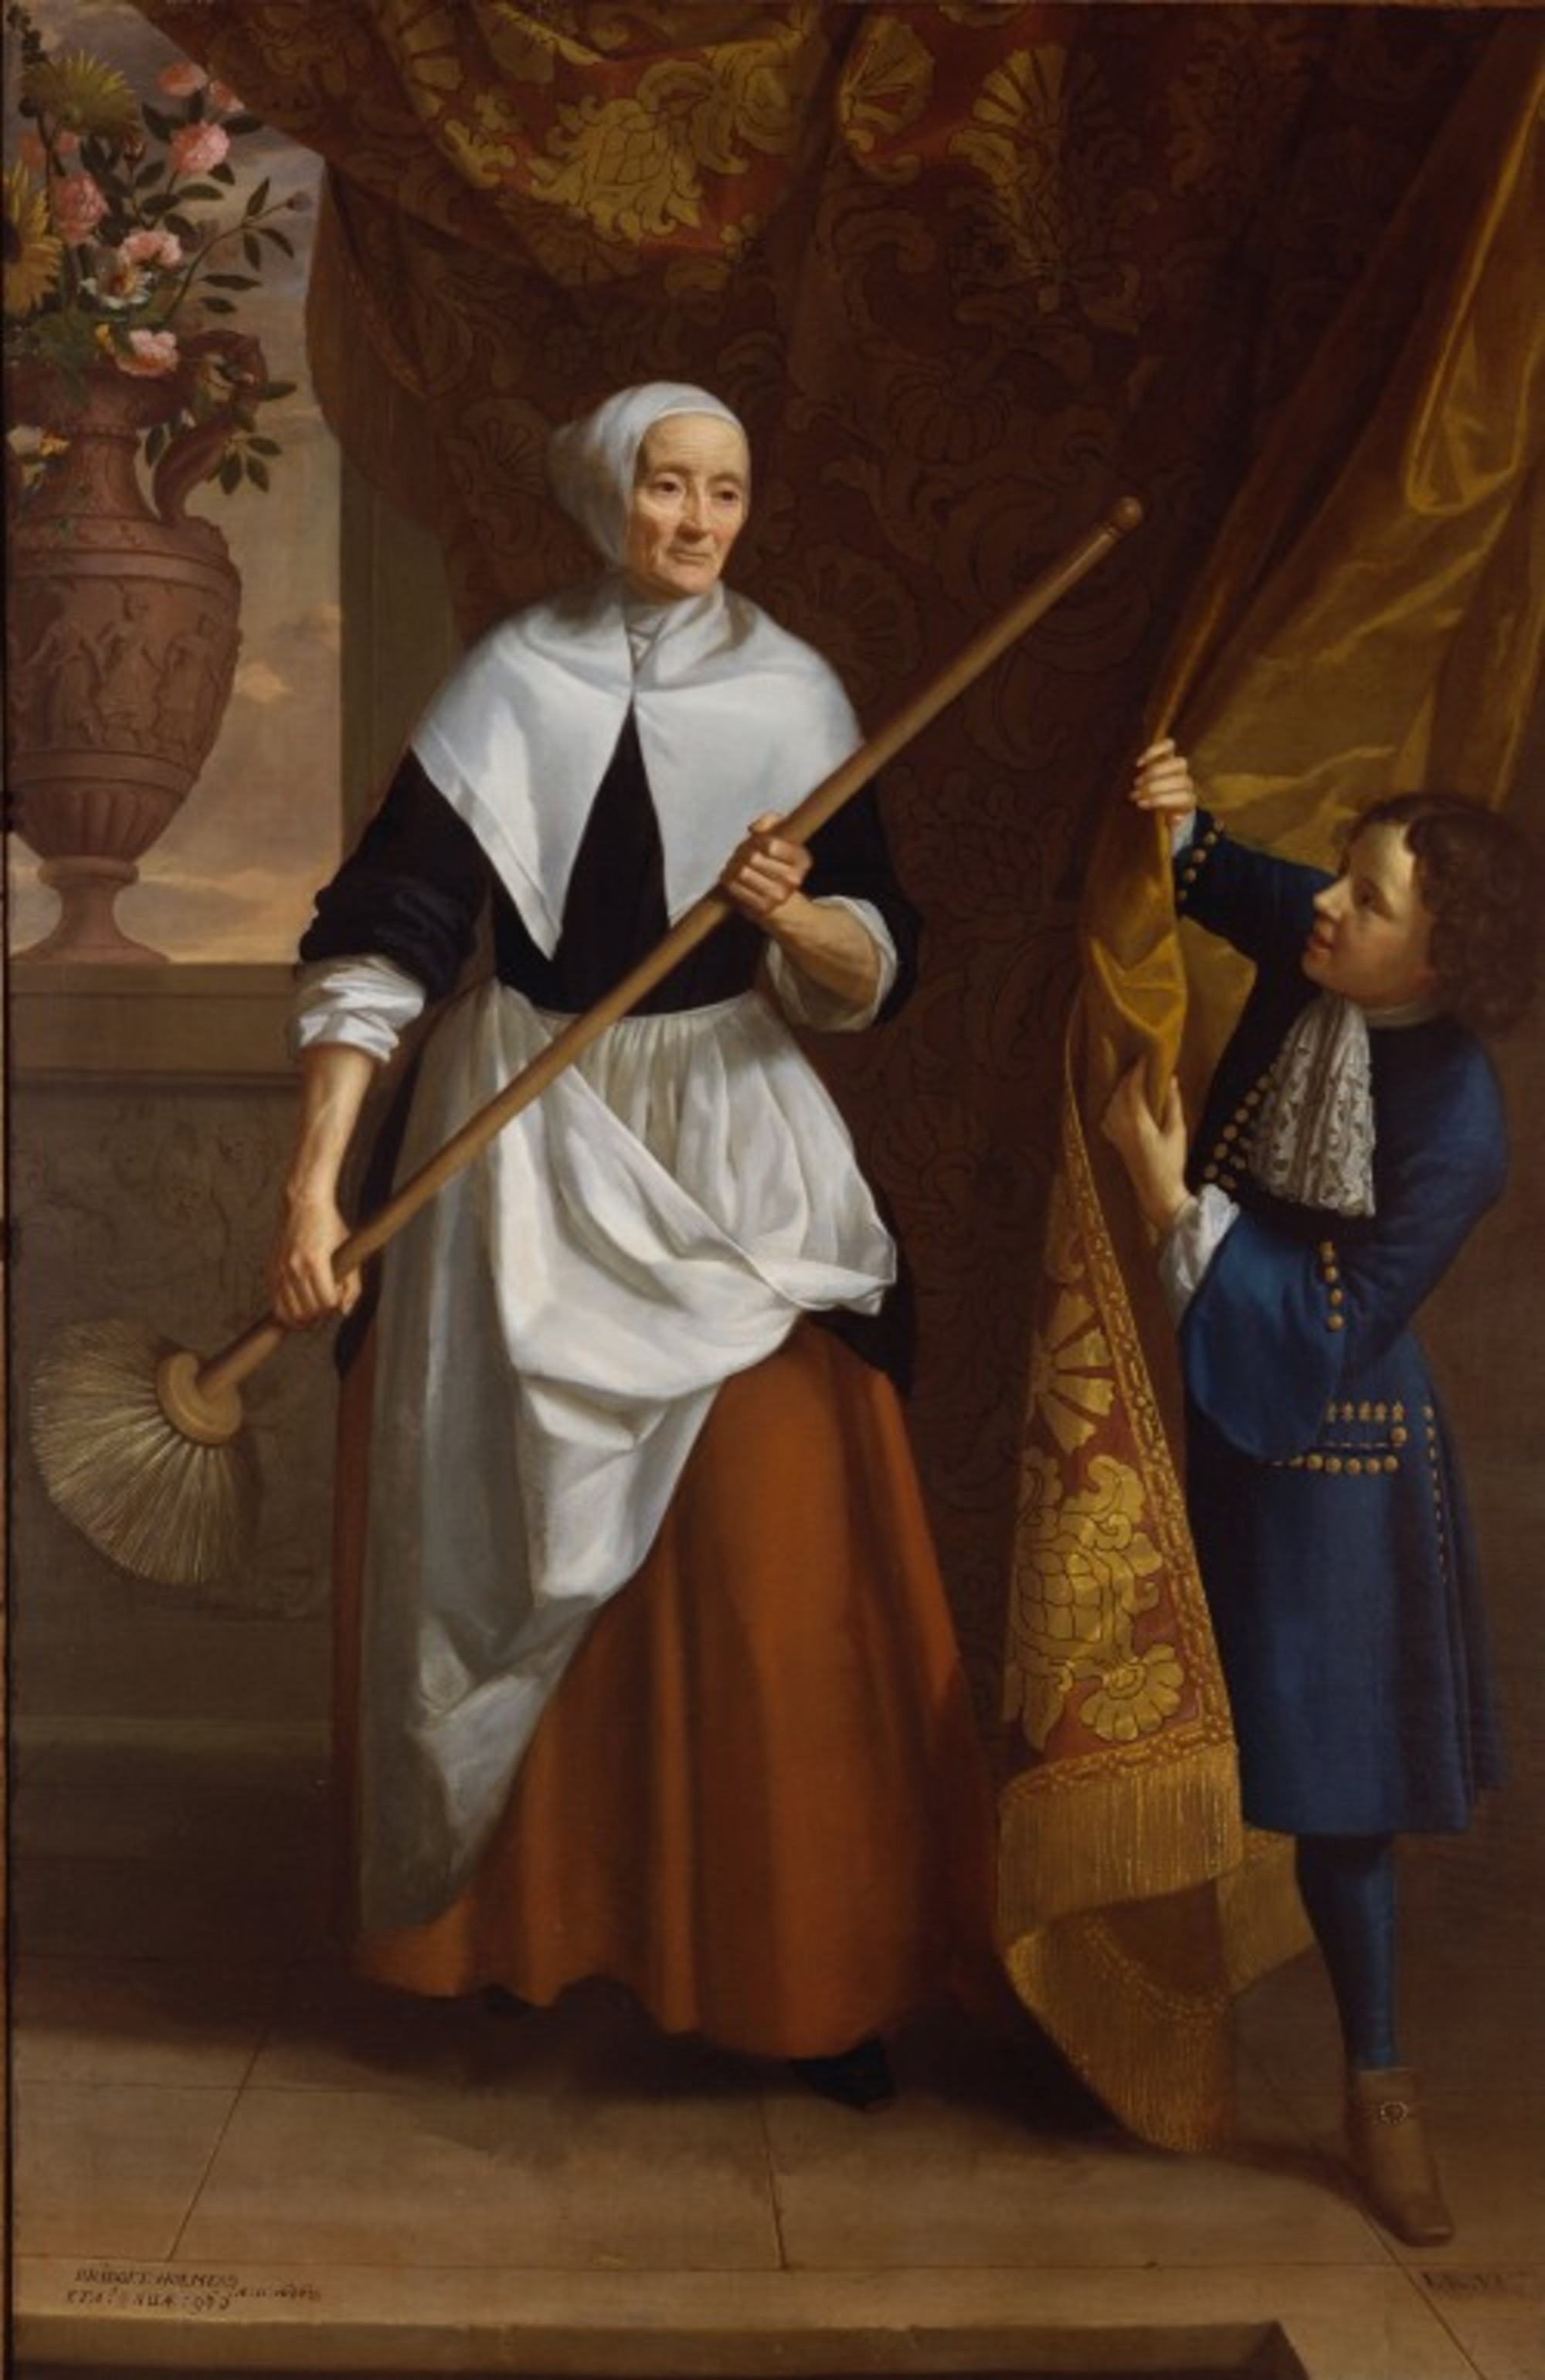 John-Riley---Bridget-Holmes-1591-1691---Google-Art-Project.jpg